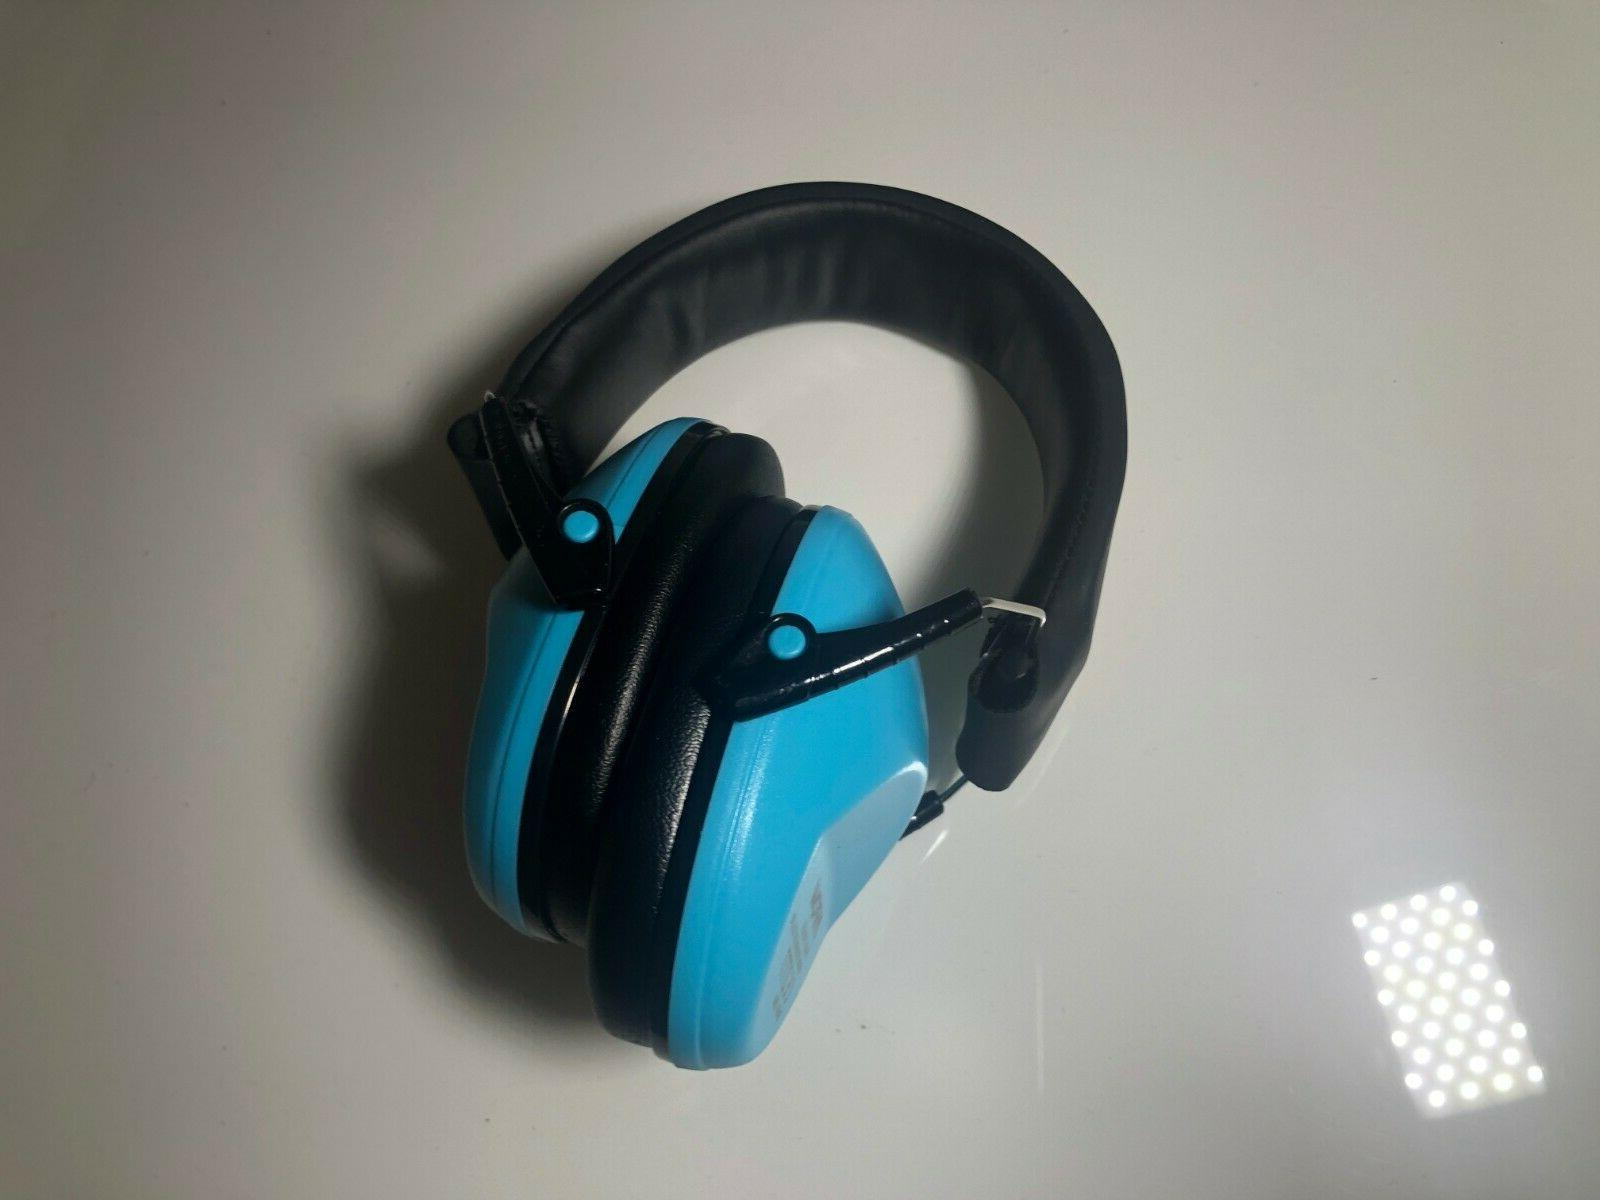 068 kids ear protection nrr 25db noise